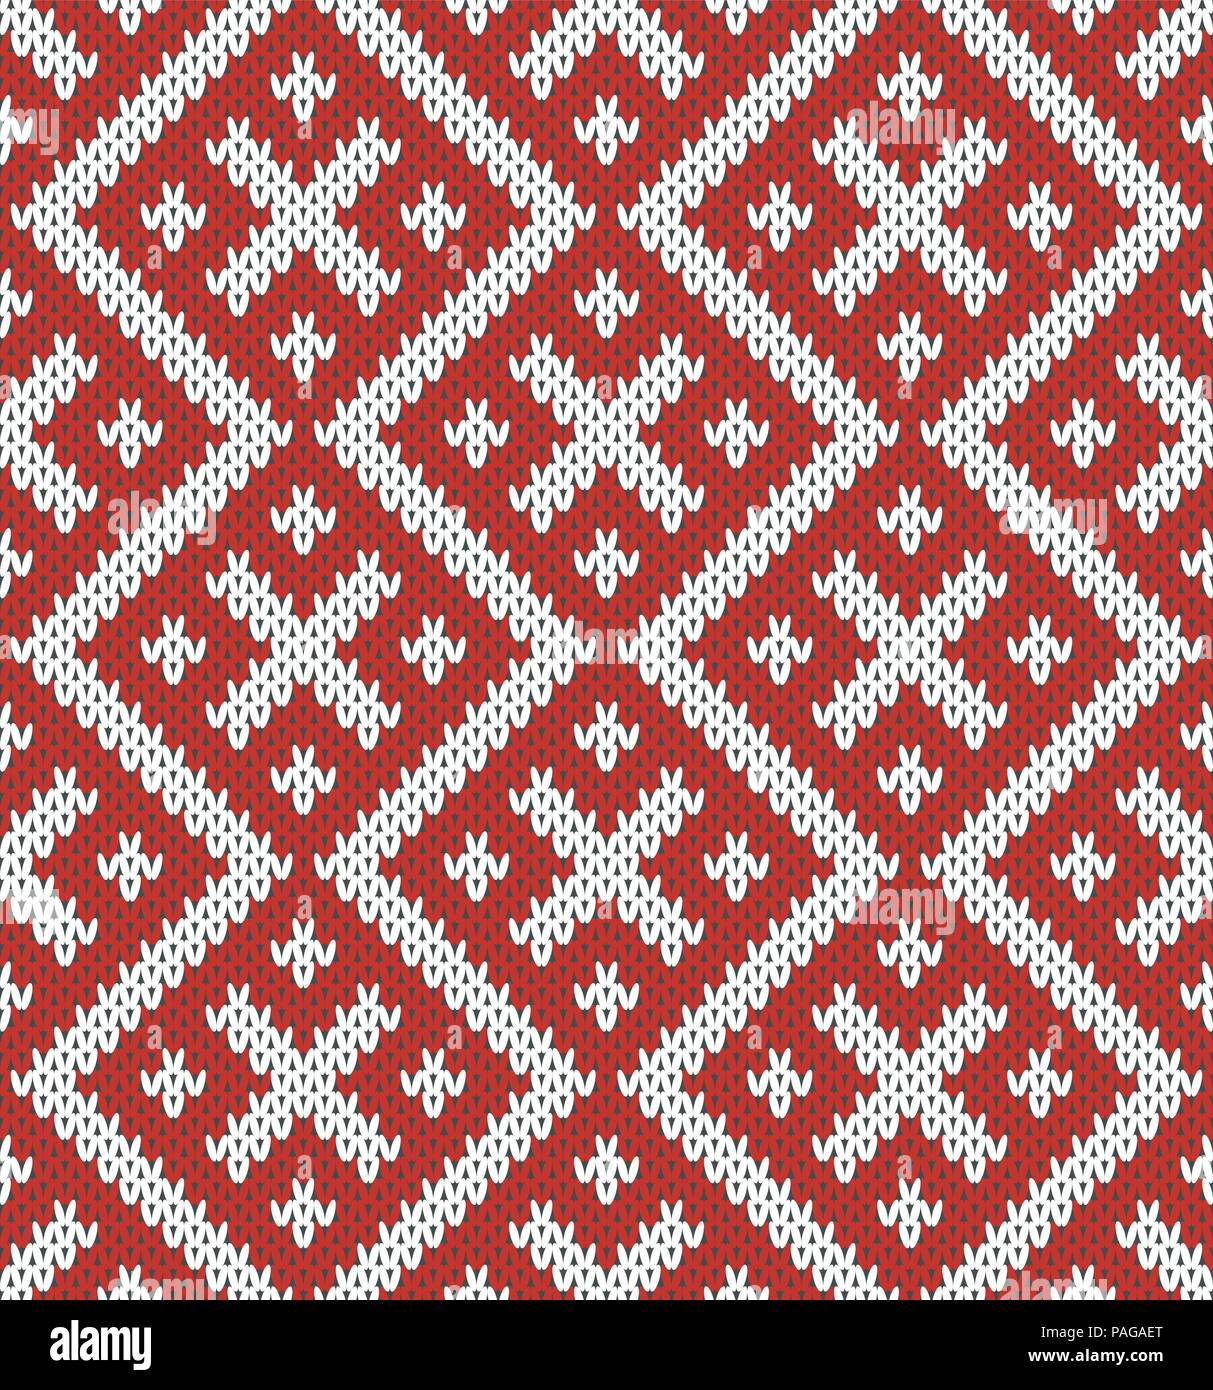 Seamless Knitting Pattern.Based on traditional Russian.Red and white.Wool Knit Texture Imitation. - Stock Vector